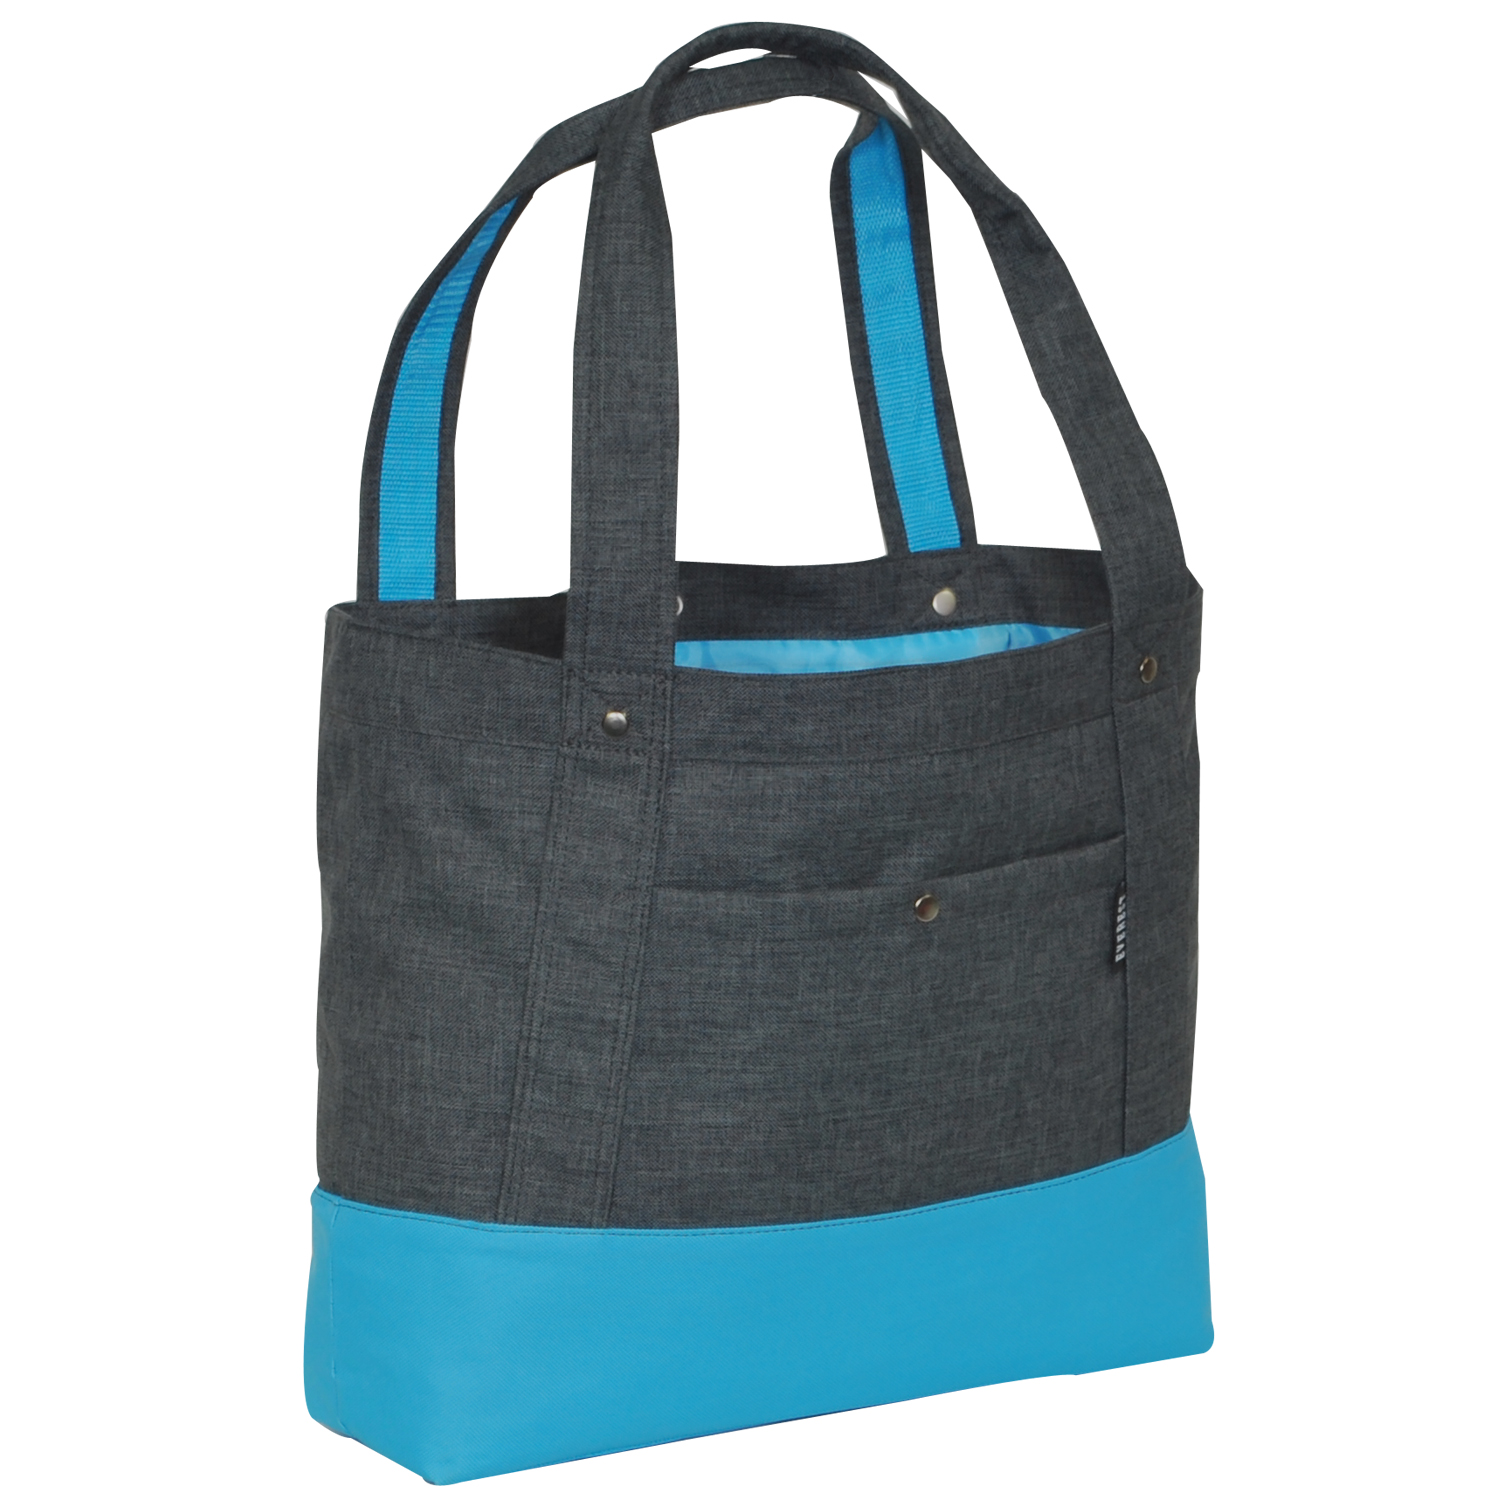 Everest Stylish Tablet Tote Bag - Free Shipping